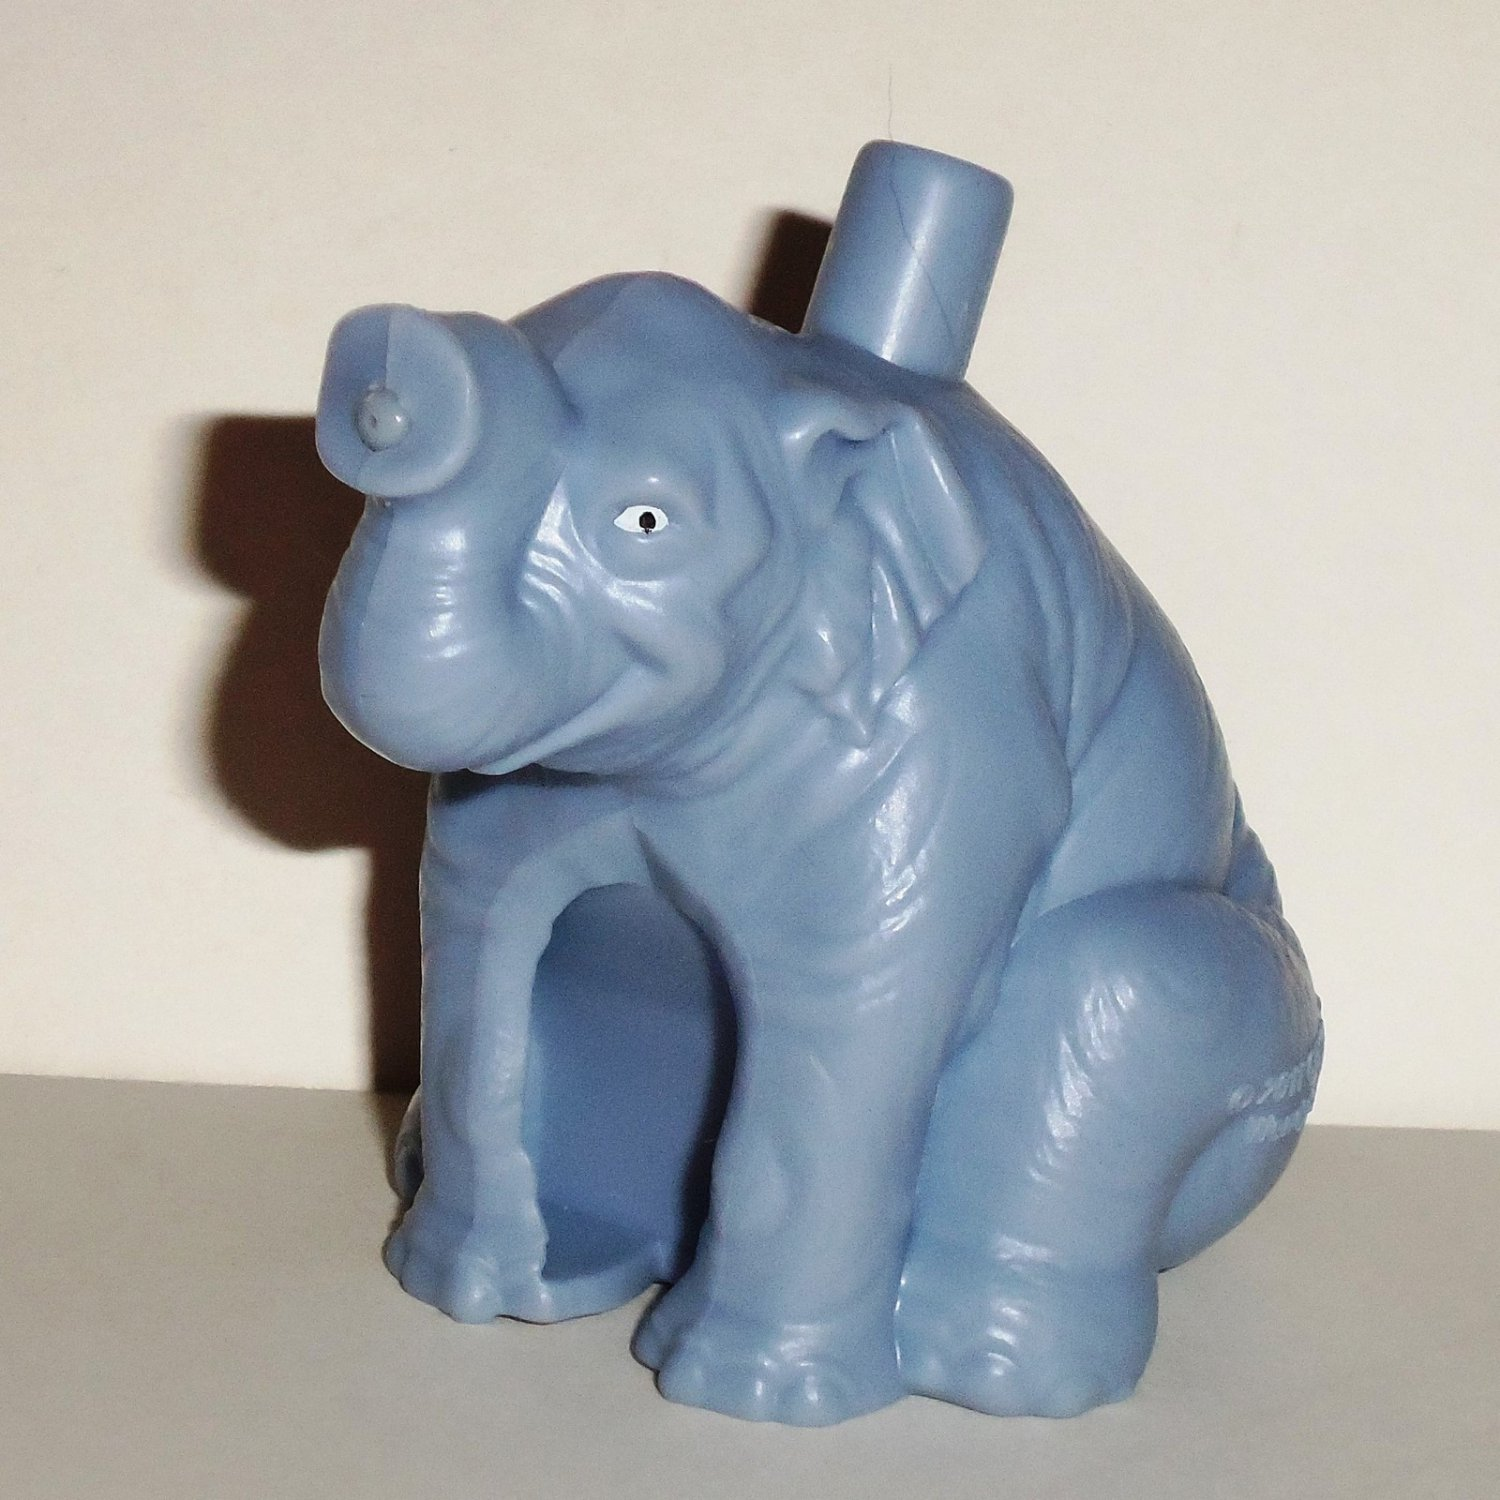 Wendy s 2011 Zookeeper Barry s Tar Practice Elephant Kids Meal